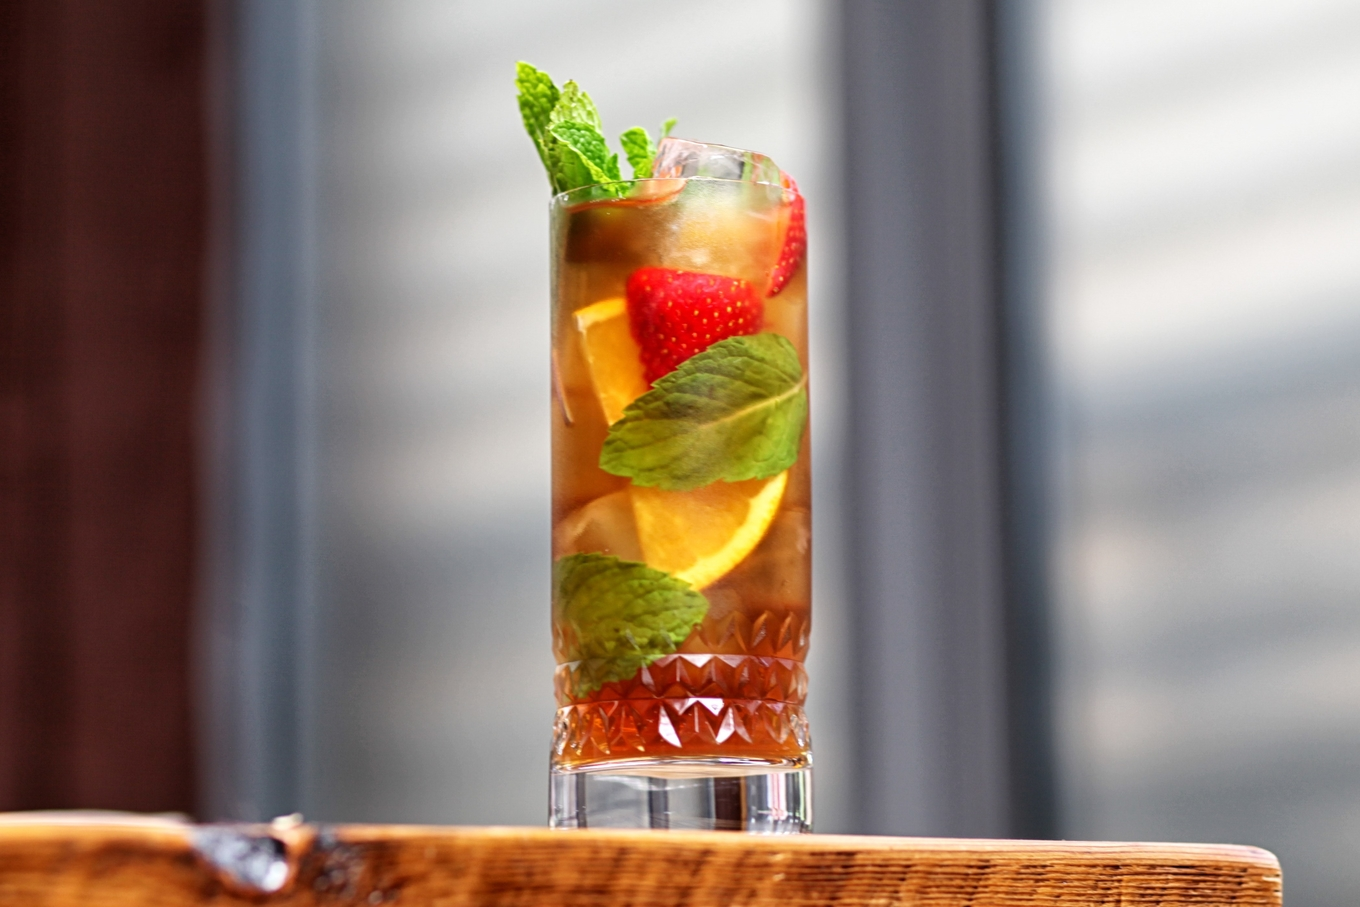 Summer Fruit Cups & Pimm's image 1